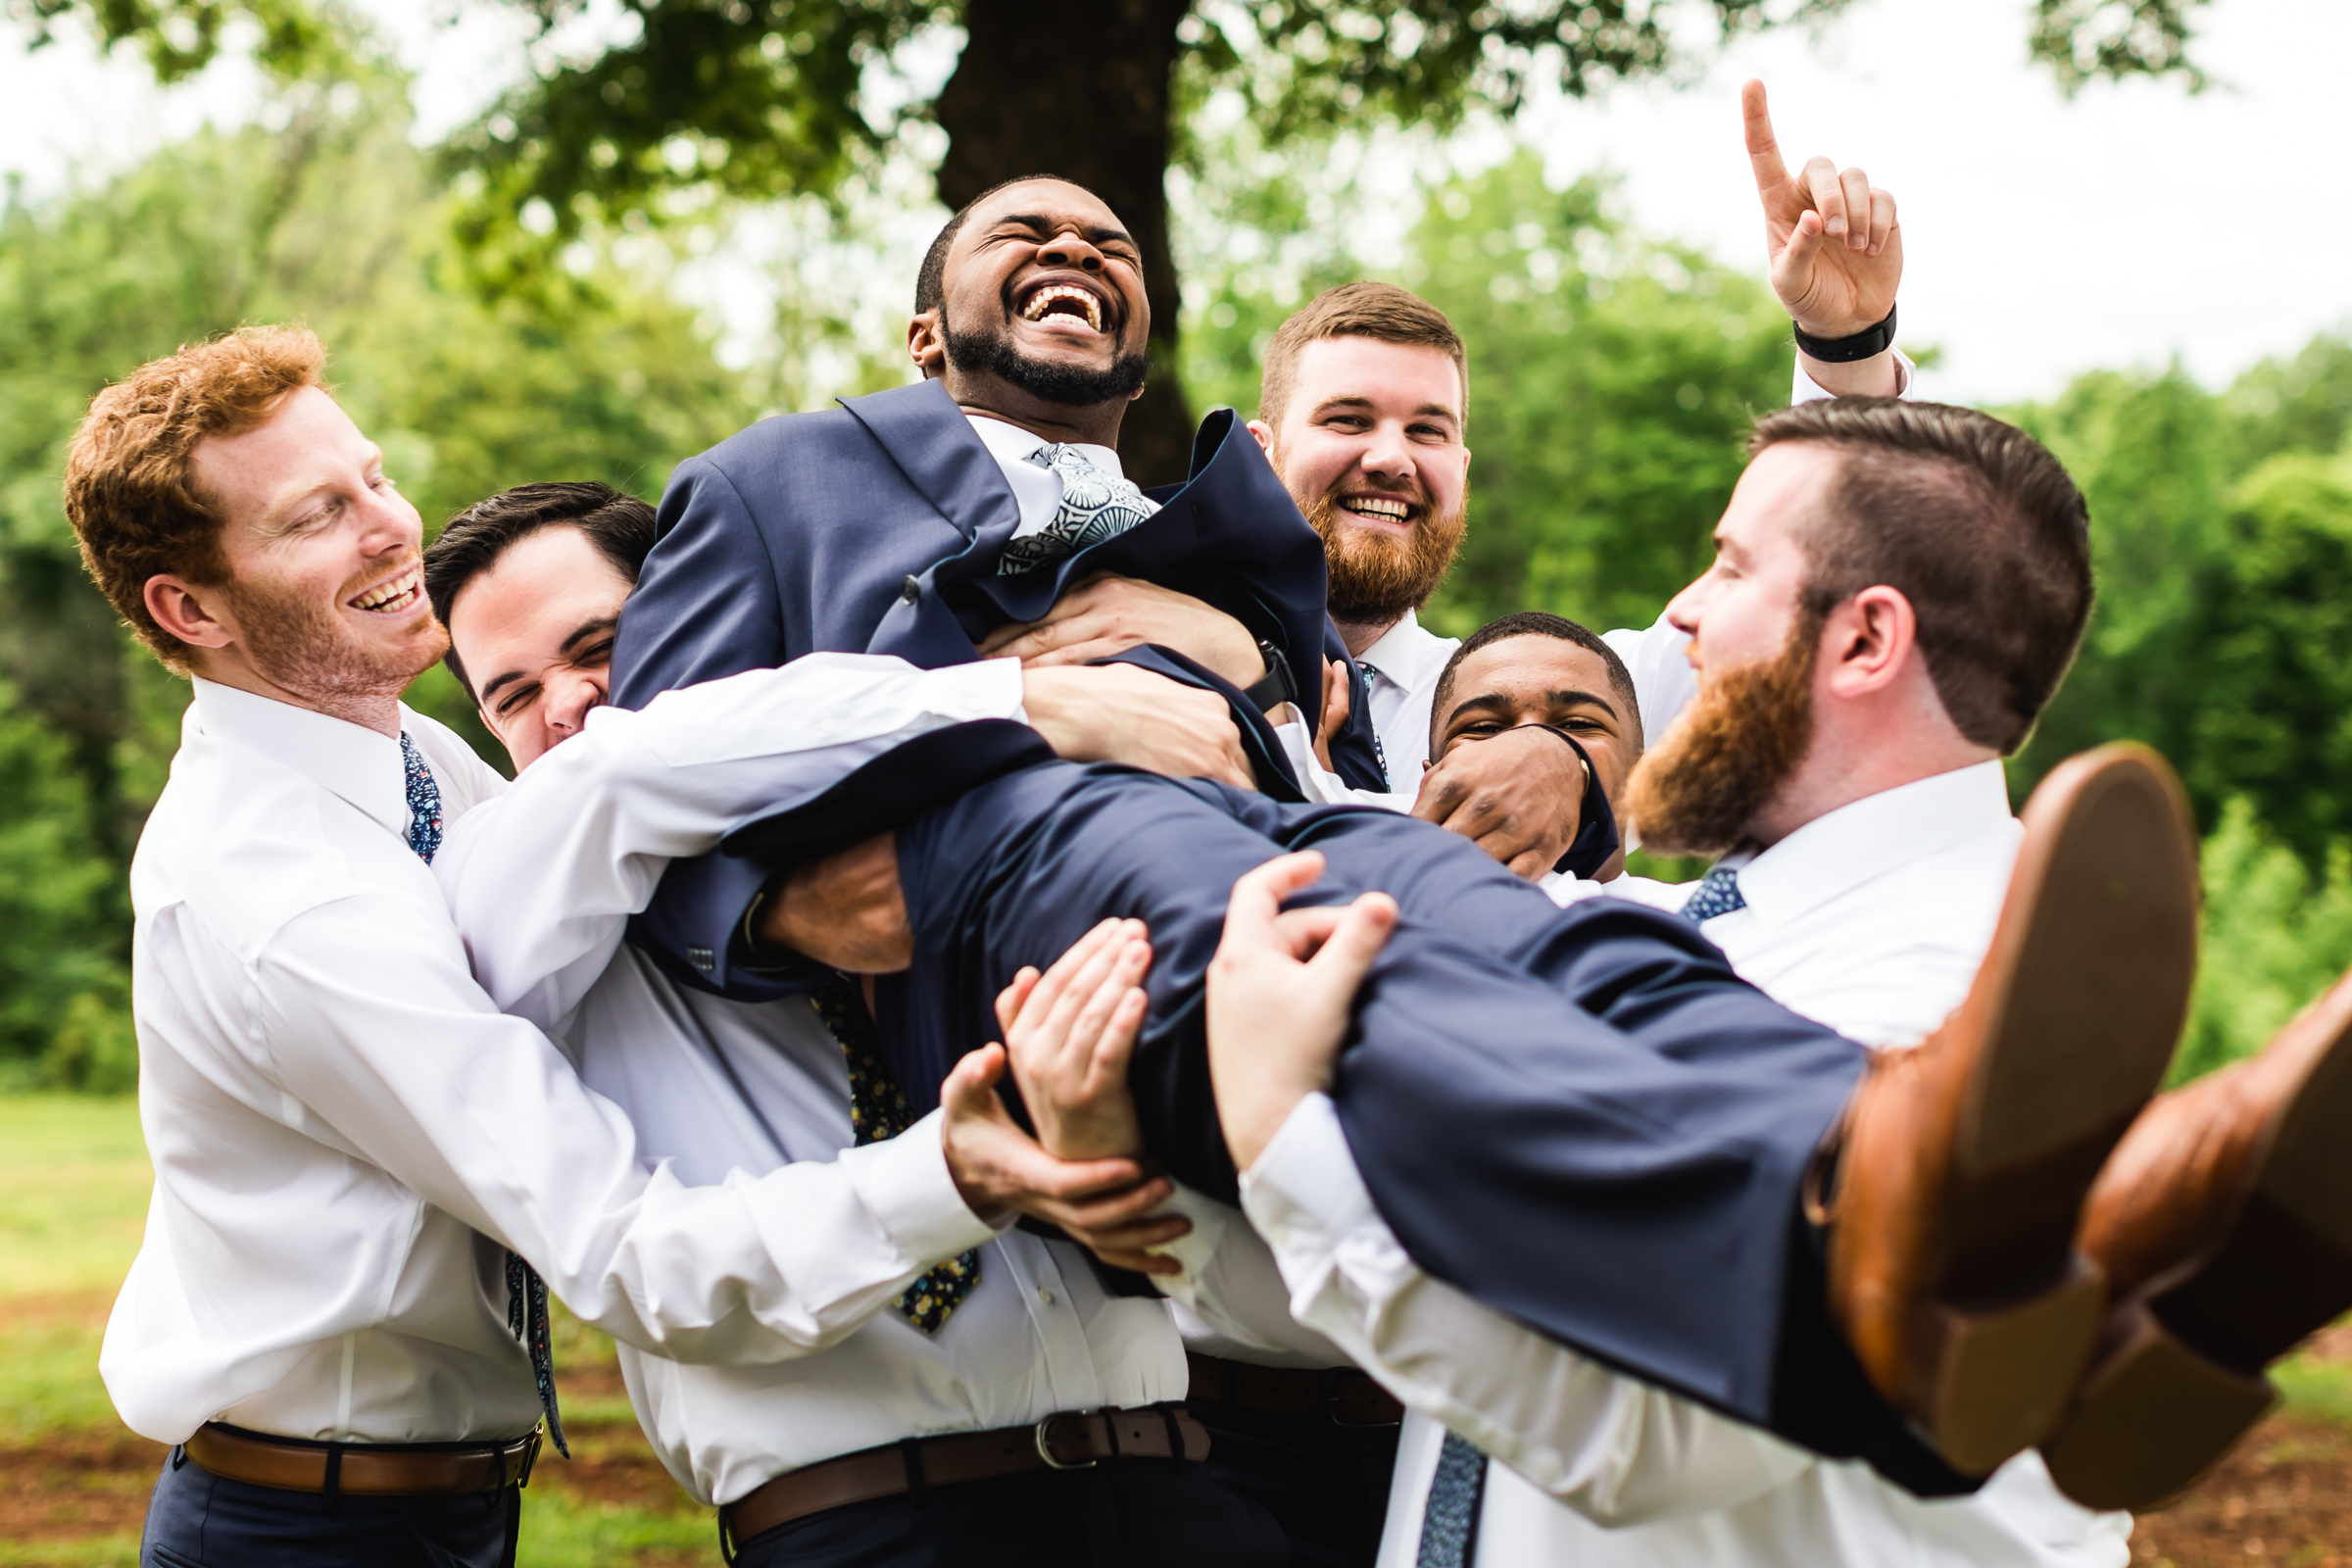 Groomsmen carrying supine groom - photo by Xiaoqi Li Photography